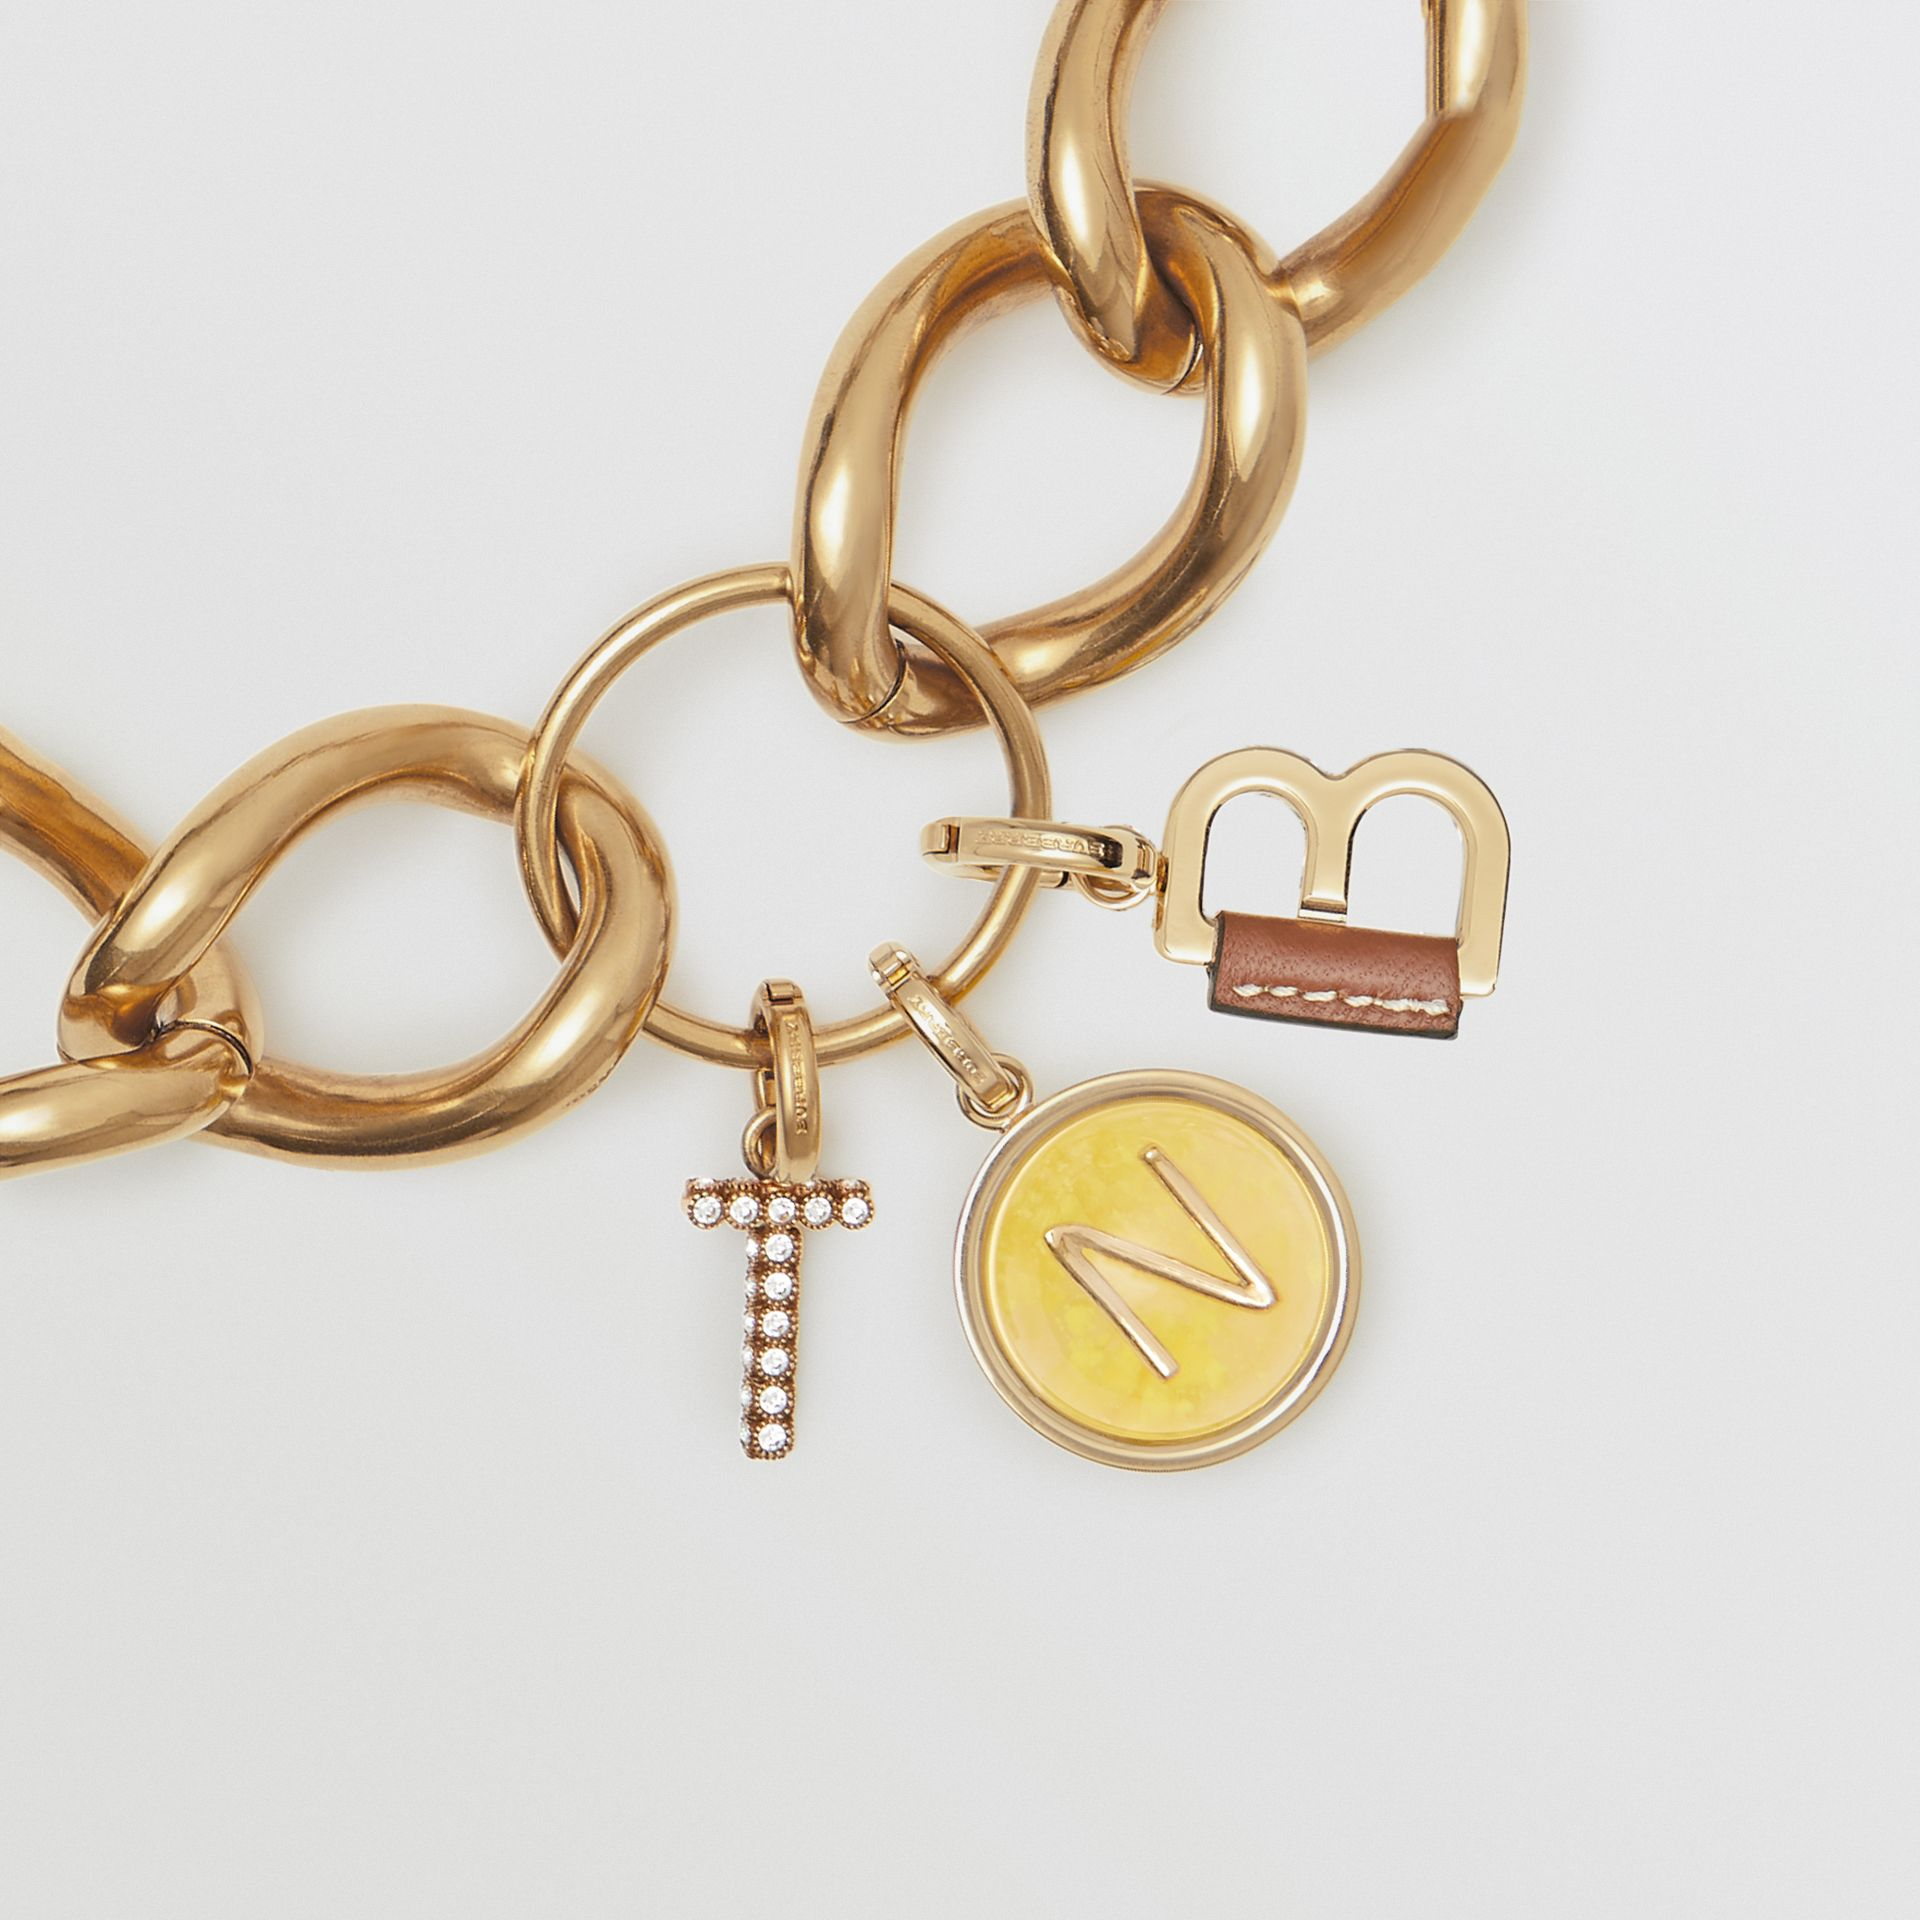 Marbled Resin 'Q' Alphabet Charm in Gold/mimosa - Women | Burberry United States - gallery image 2